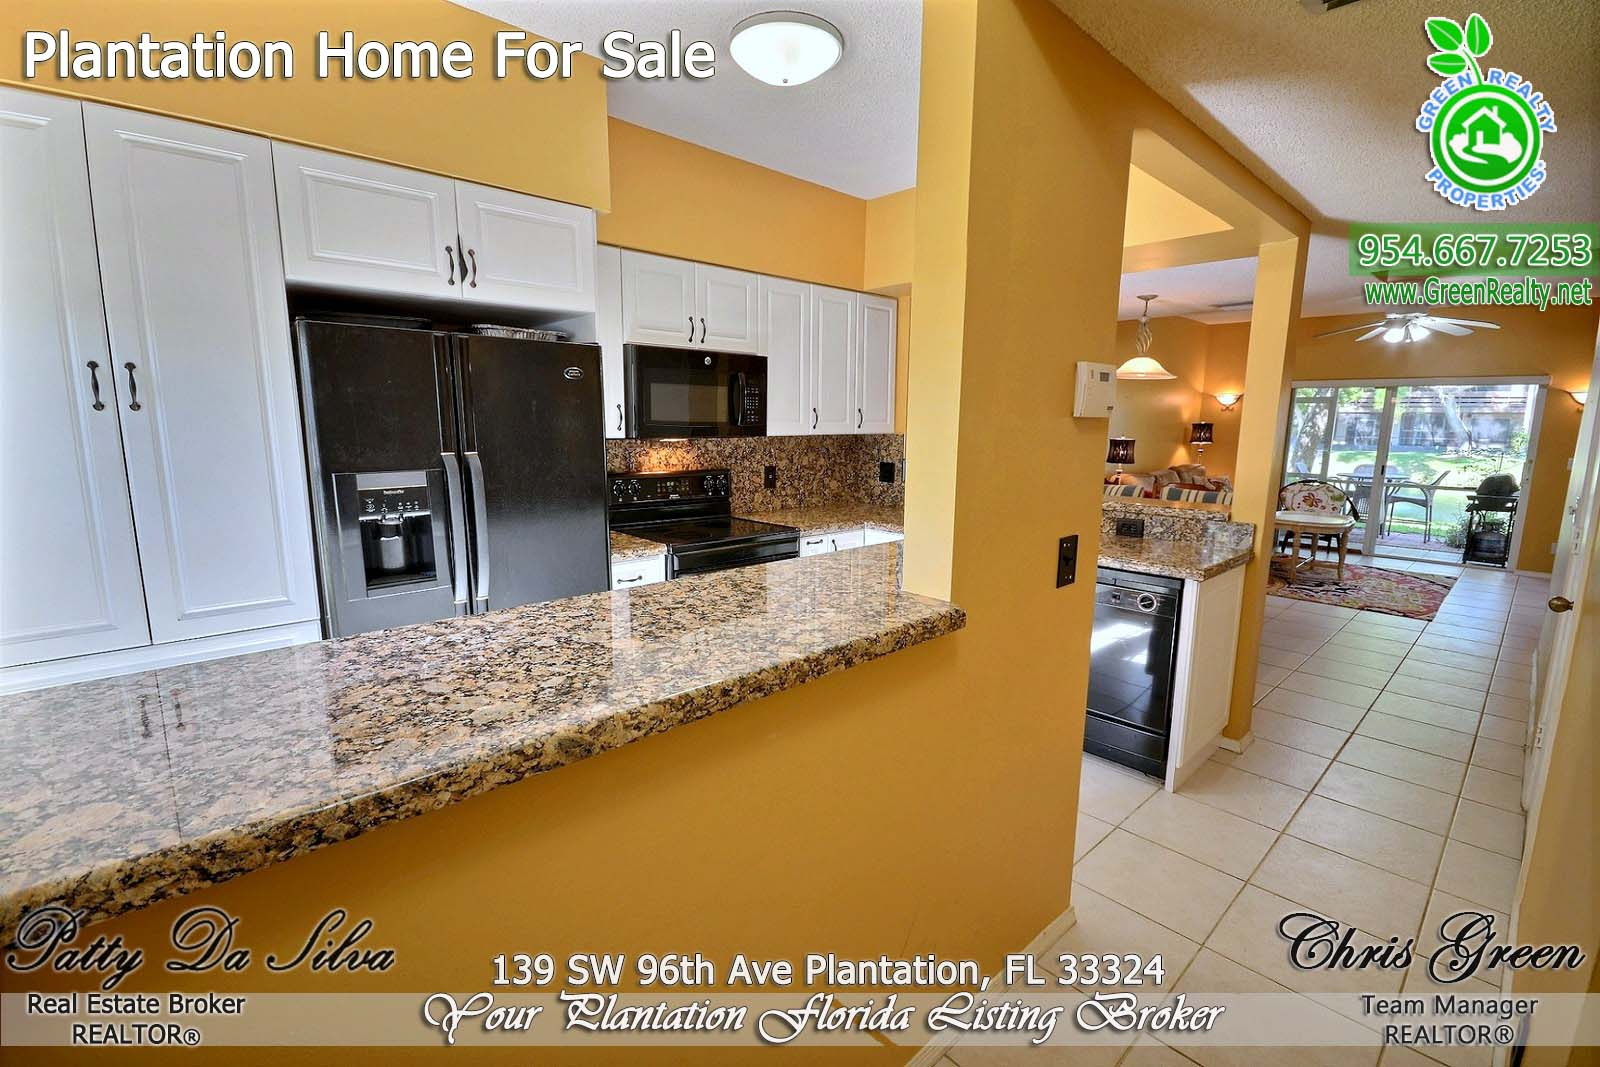 5 Plantation Florida Homes For Sale (3)